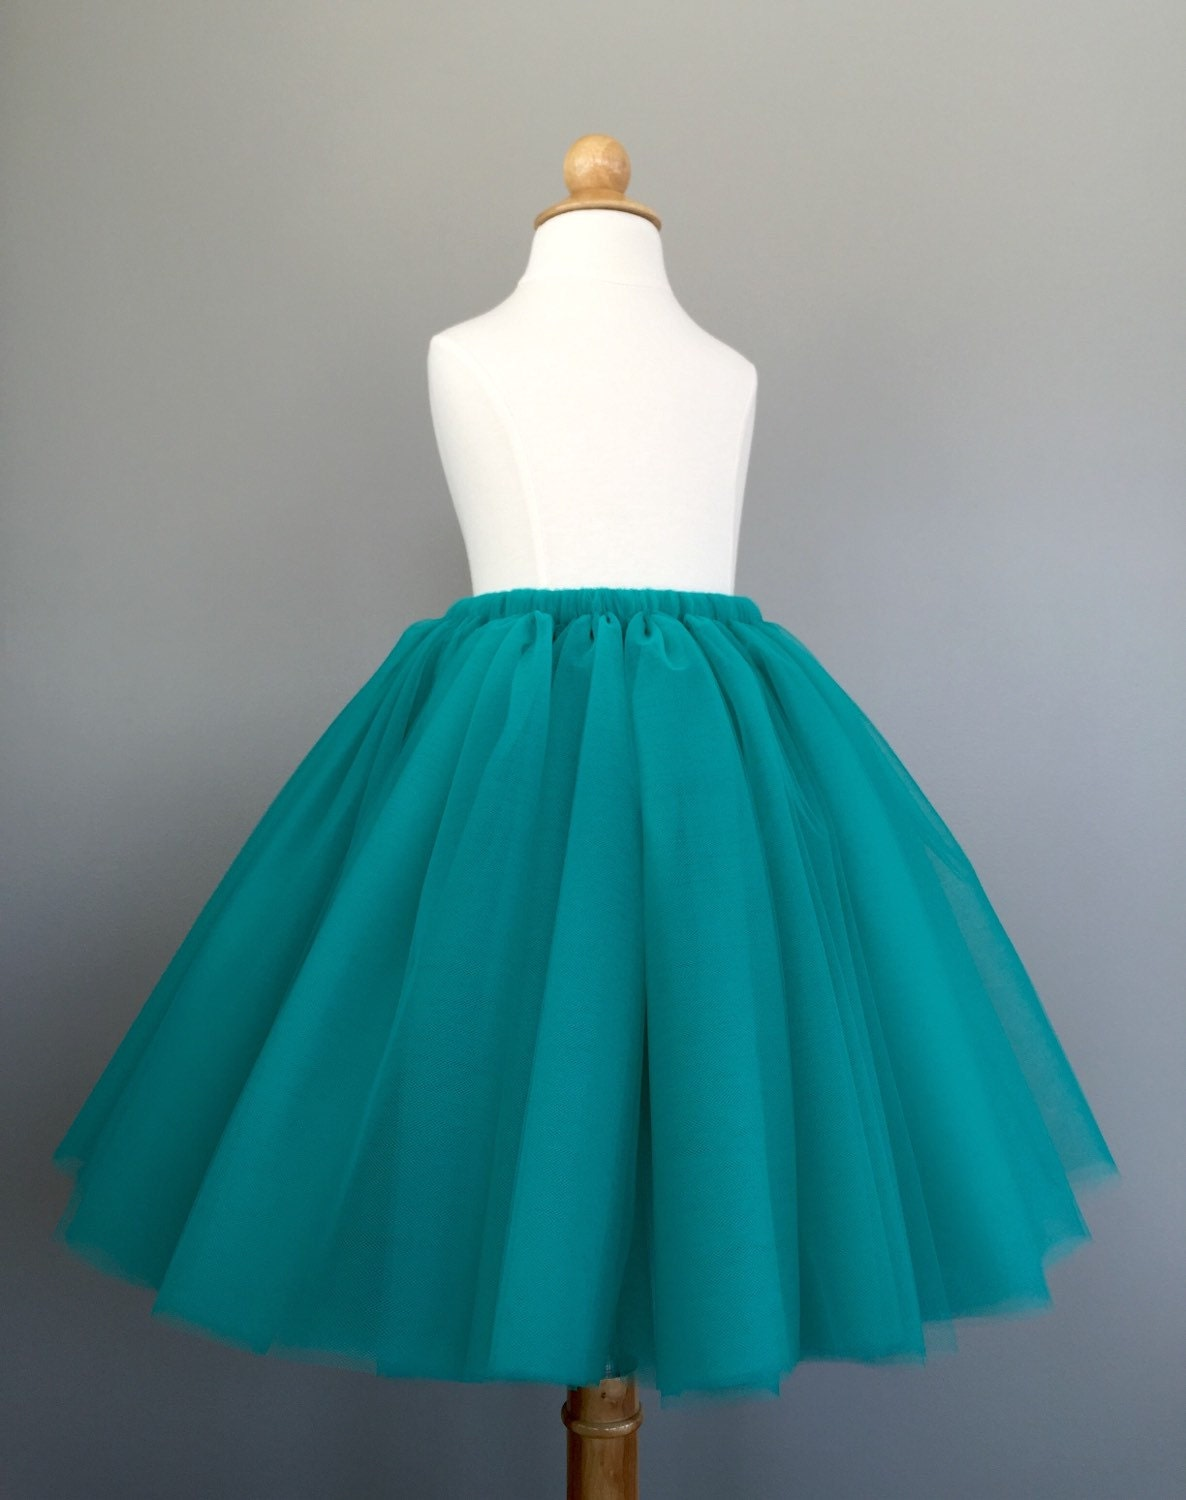 Long Toddler Tutu Flower Girl Tulle Skirt Teal